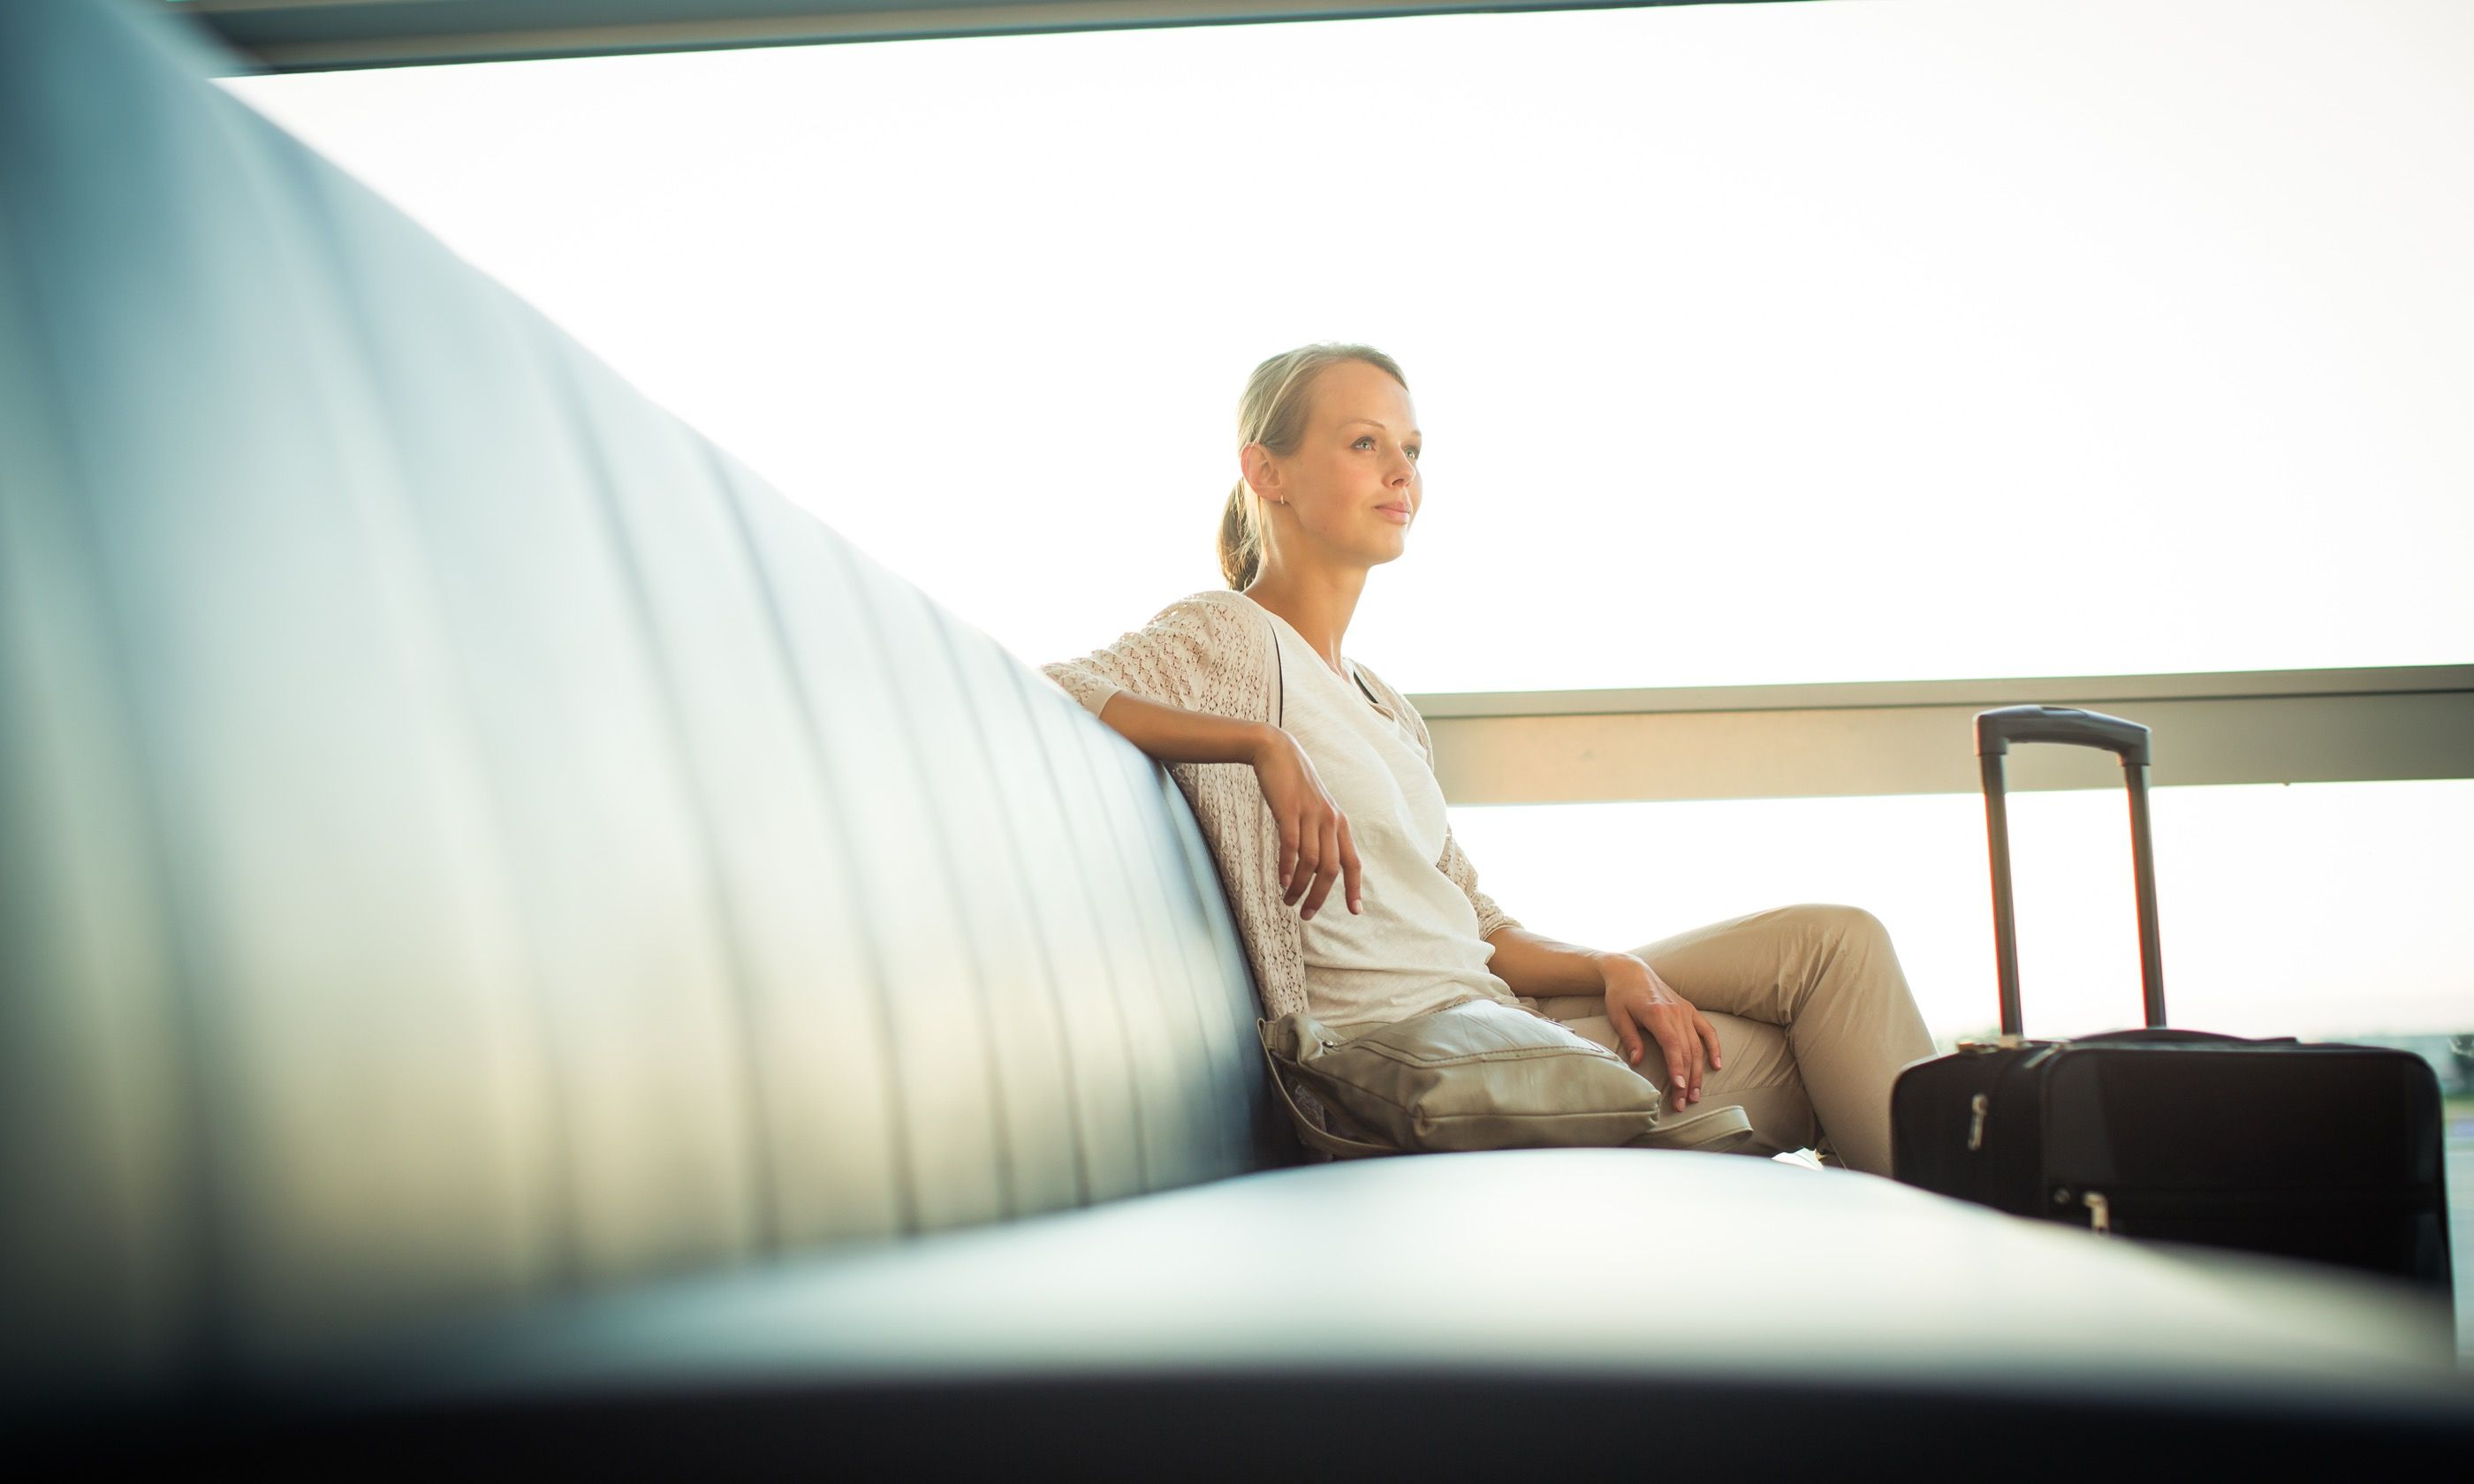 Woman waiting for flight (Shutterstockc.com)